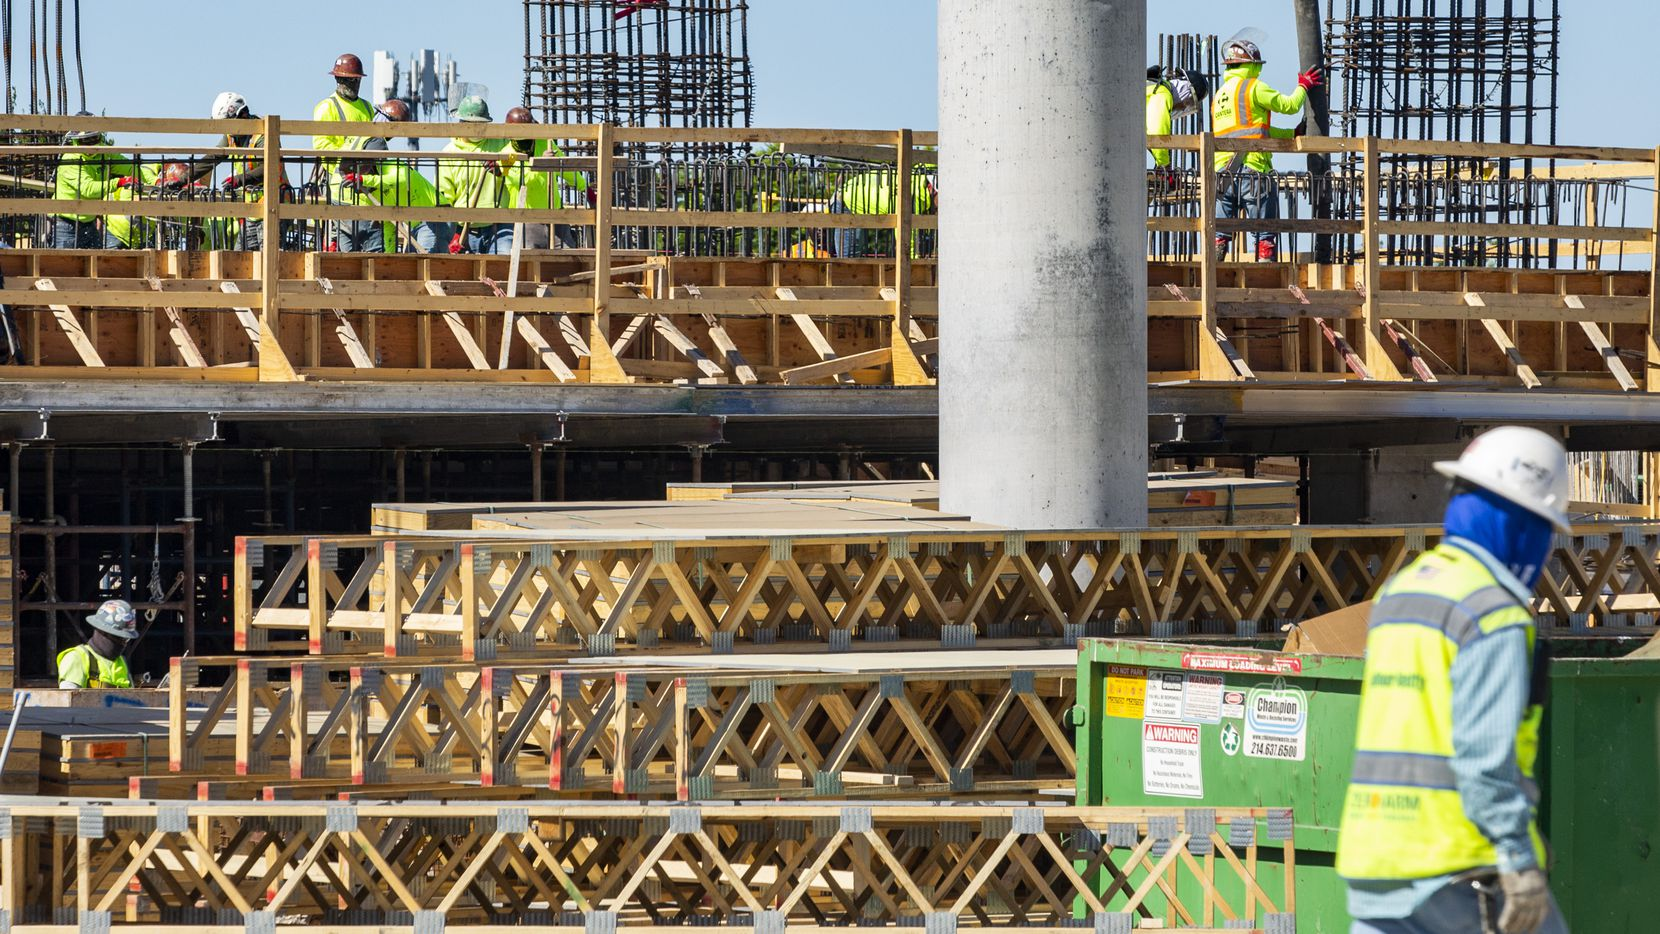 North Texas has lost almost 11,000 construction industry jobs during the pandemic.